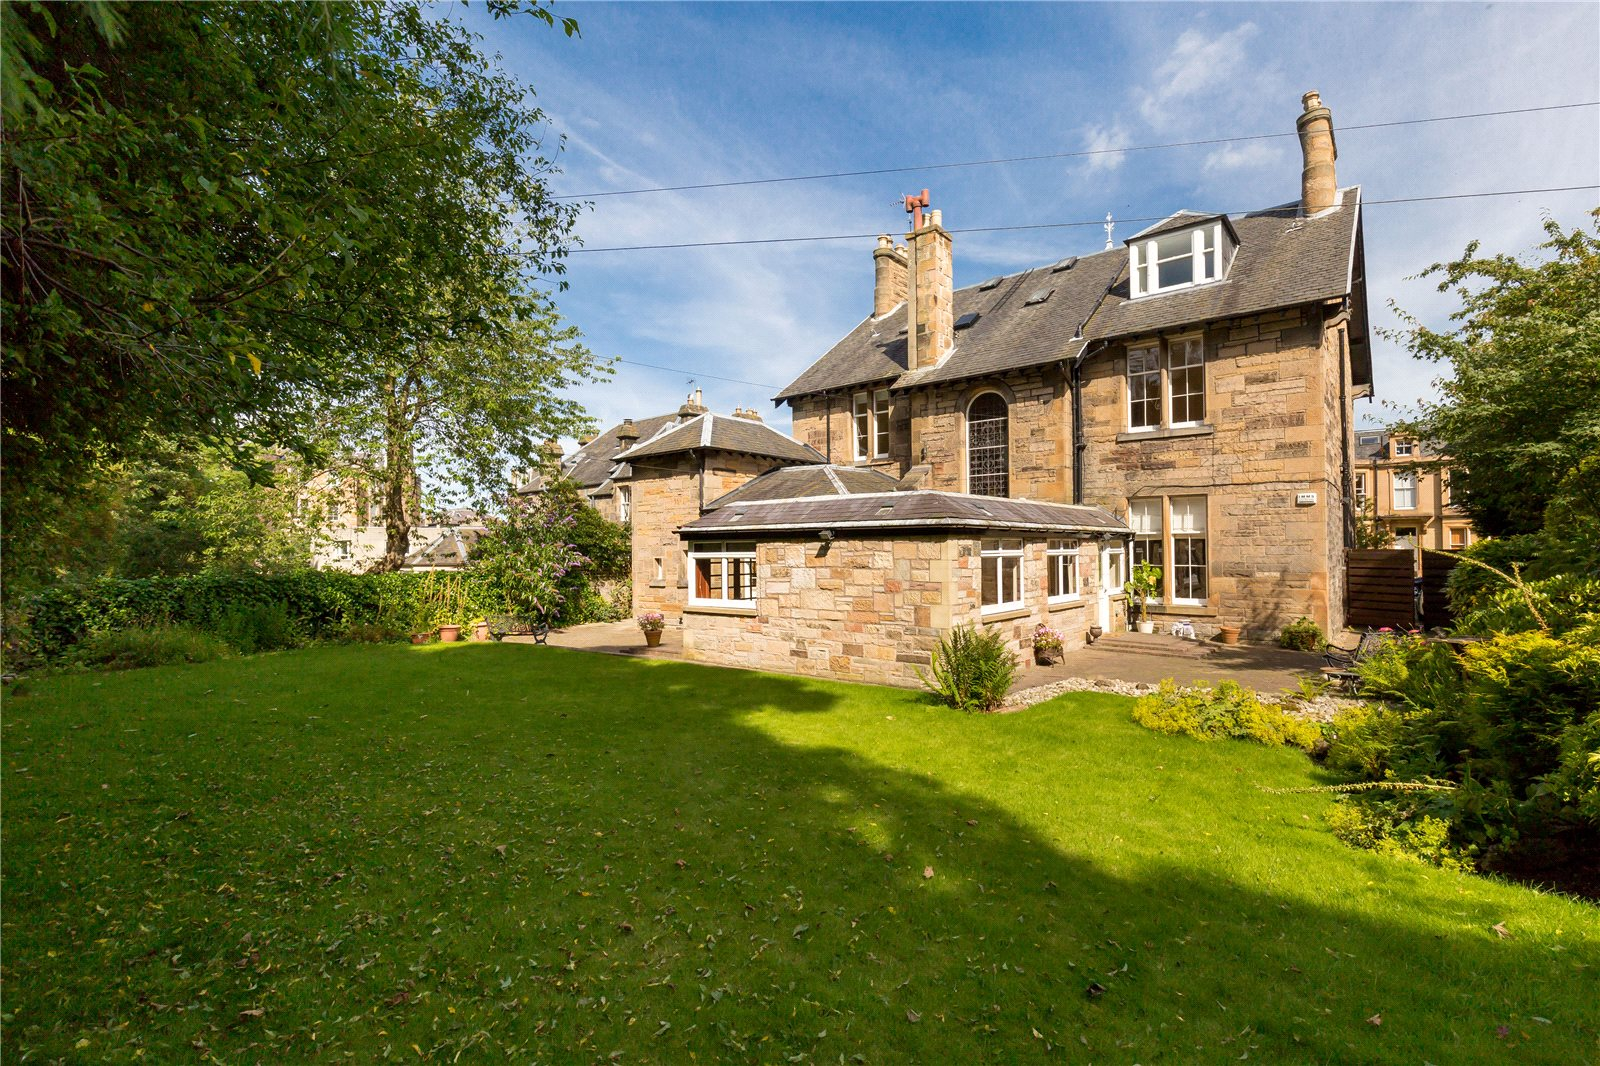 Single Family Home for Sale at Chalmers Crescent, Edinburgh, EH9 Edinburgh, Scotland